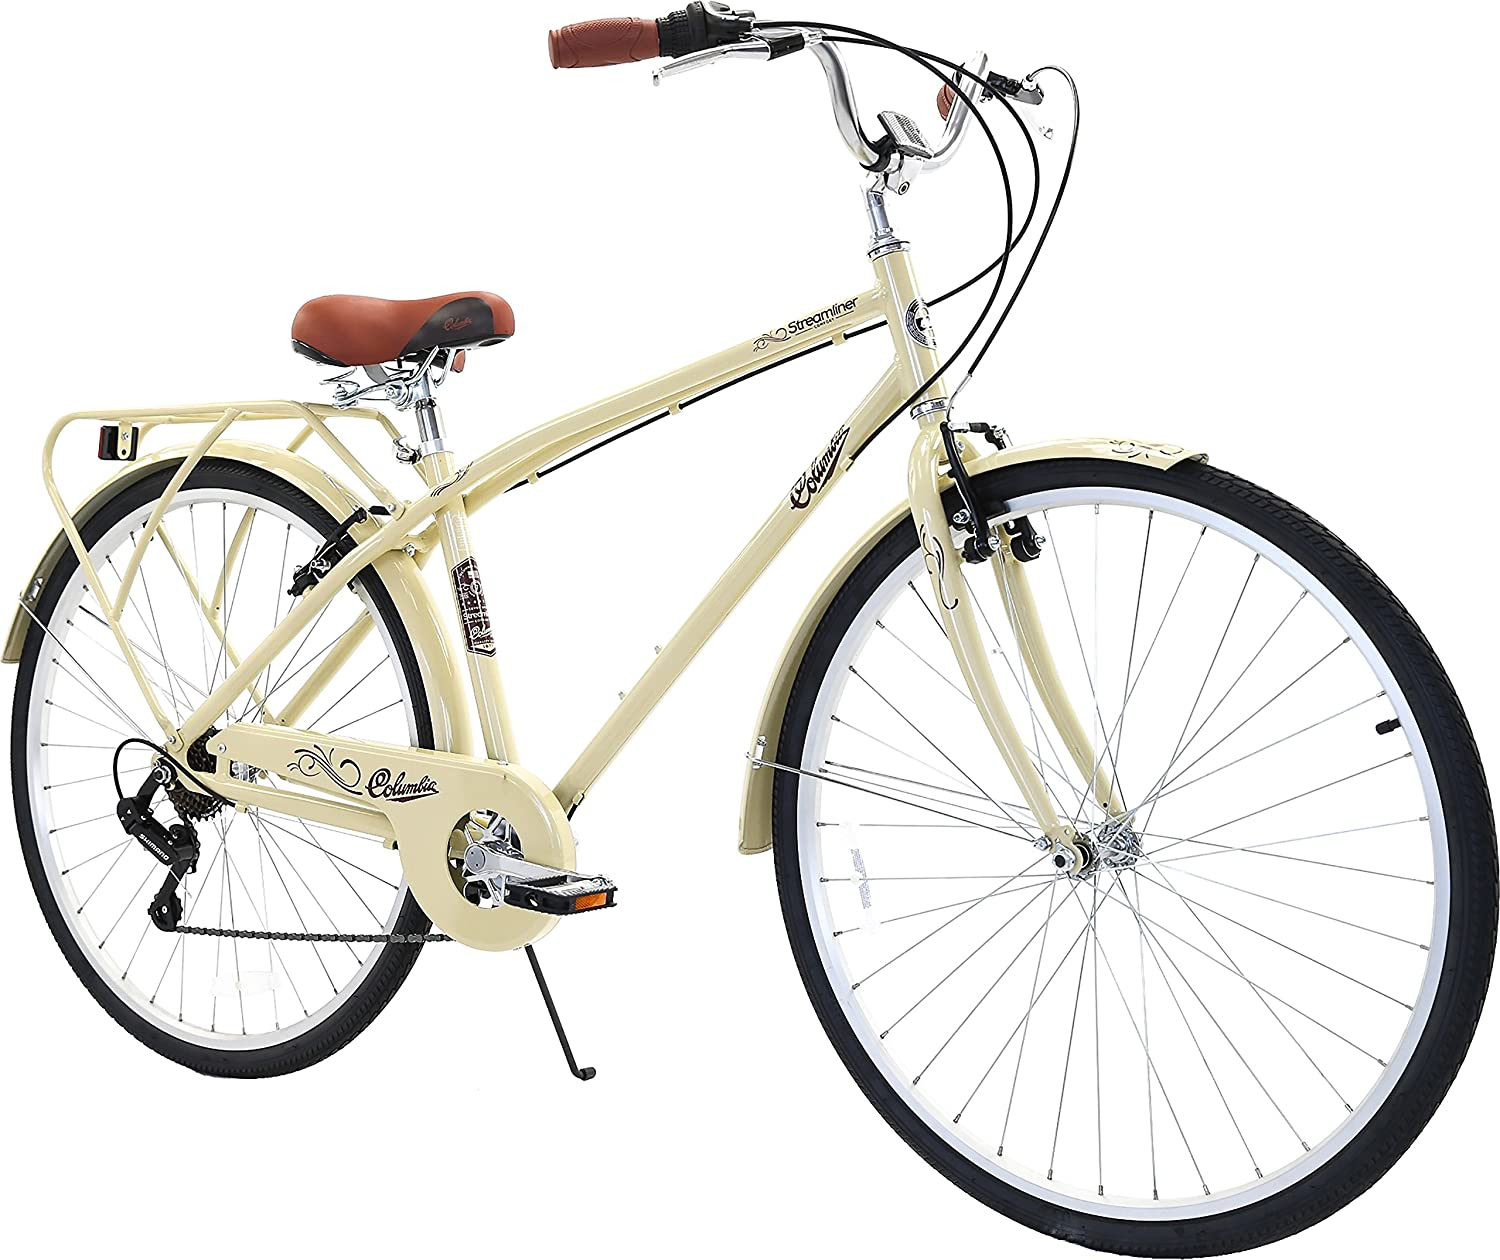 Columbia Bicycles Streamliner 700c Men s 7-Speed City Cruiser Bike